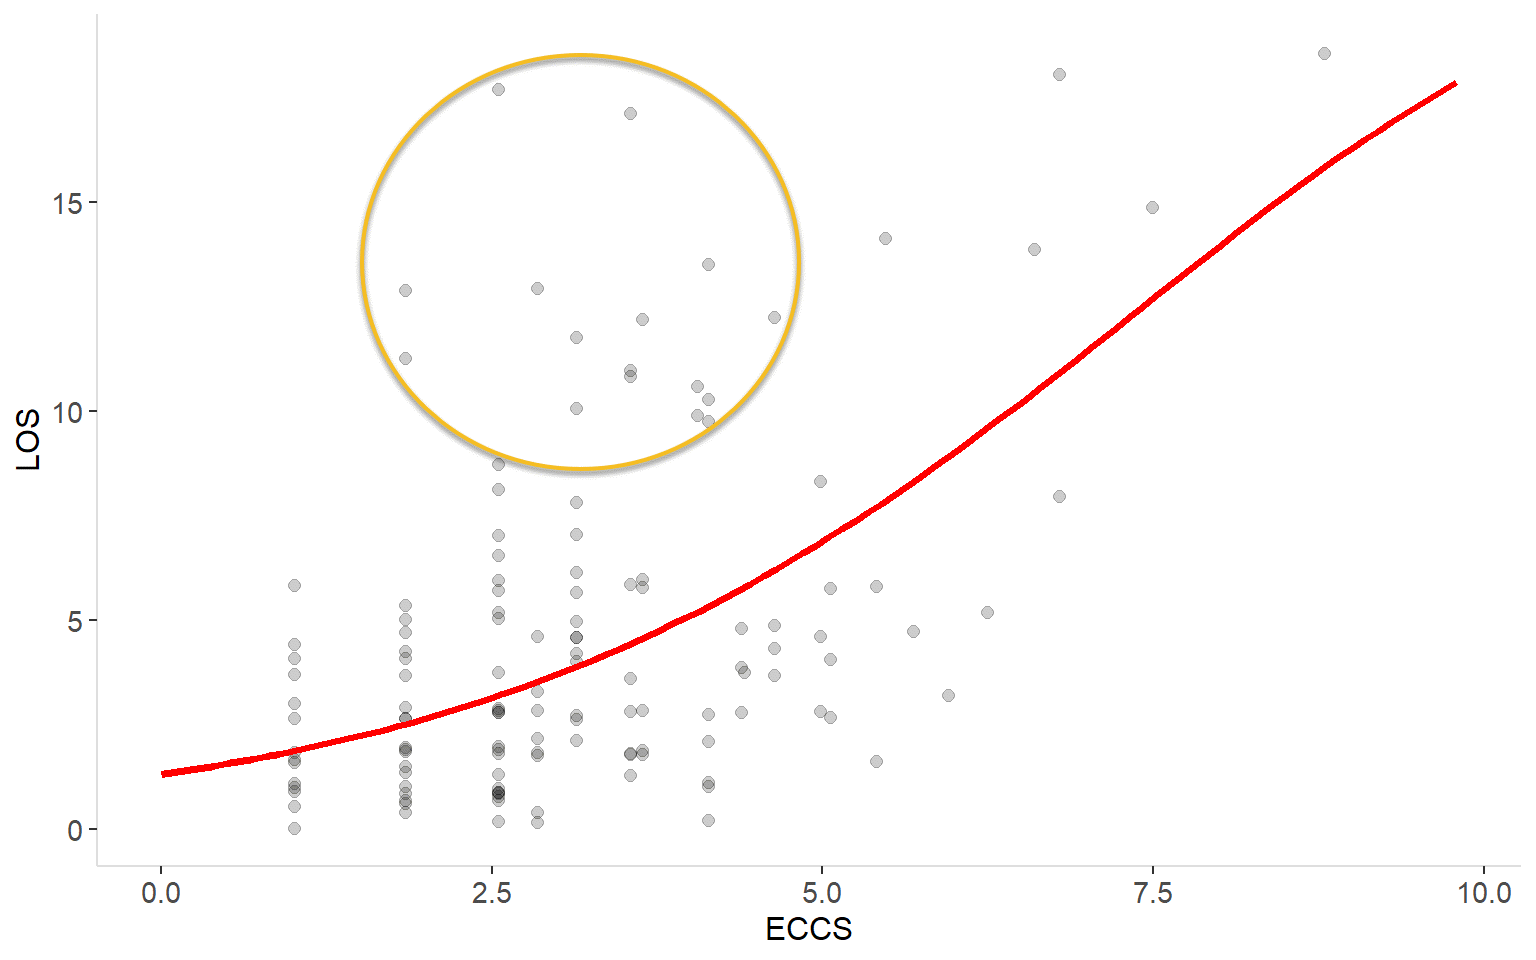 J64 – Cellulitis episodes with expected ELOS v2.0 shown in red. A group of unexplained outliers has been circled.